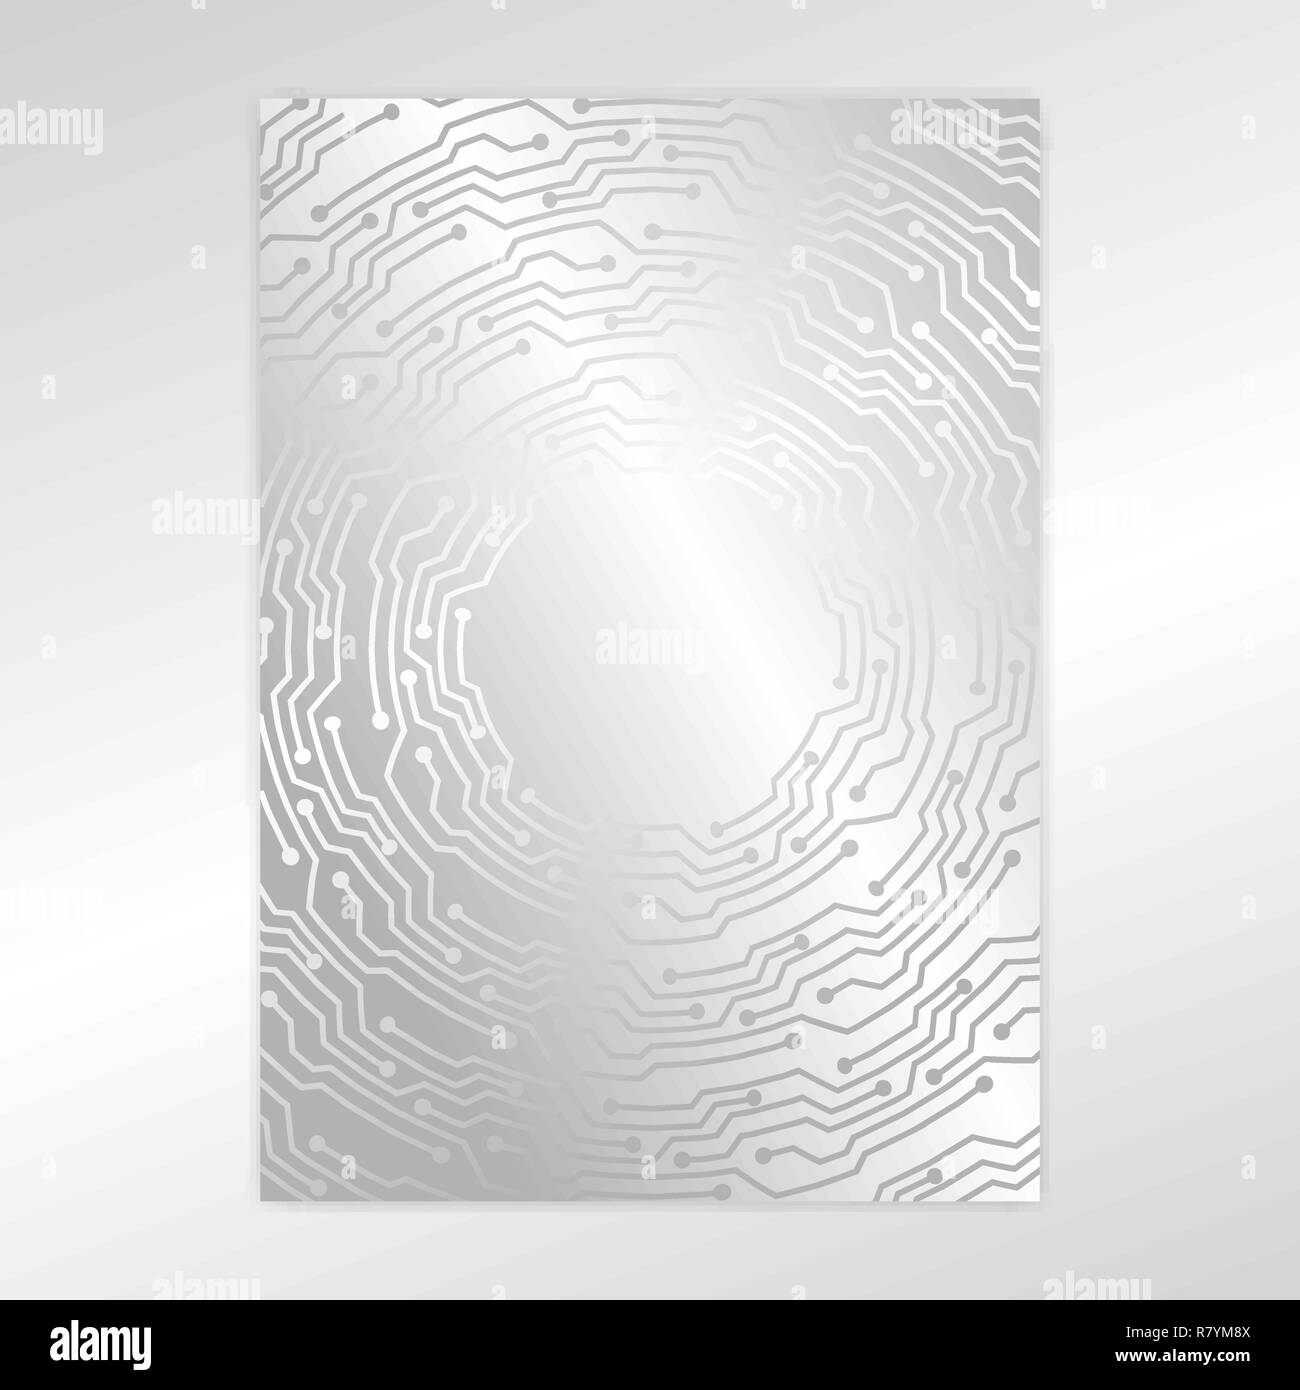 Creative Concept Metal Silver Scheme Texture Page Template Design Abstract Techno Background For Web And Print Design Stock Vector Image Art Alamy